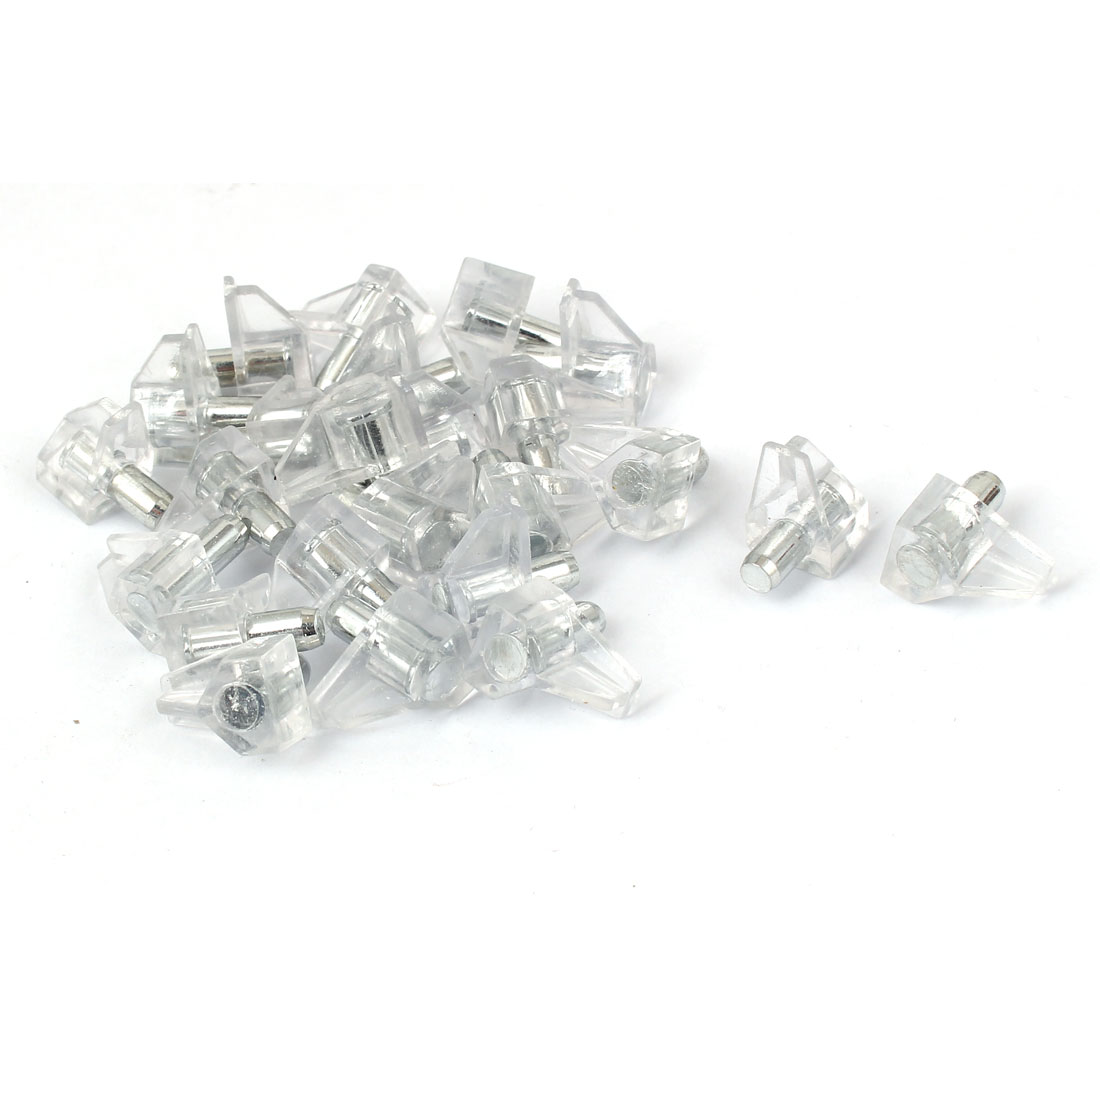 5mm Dia Support Peg Stud Pin for Kitchen Cupboard Cabinet 30 Pcs